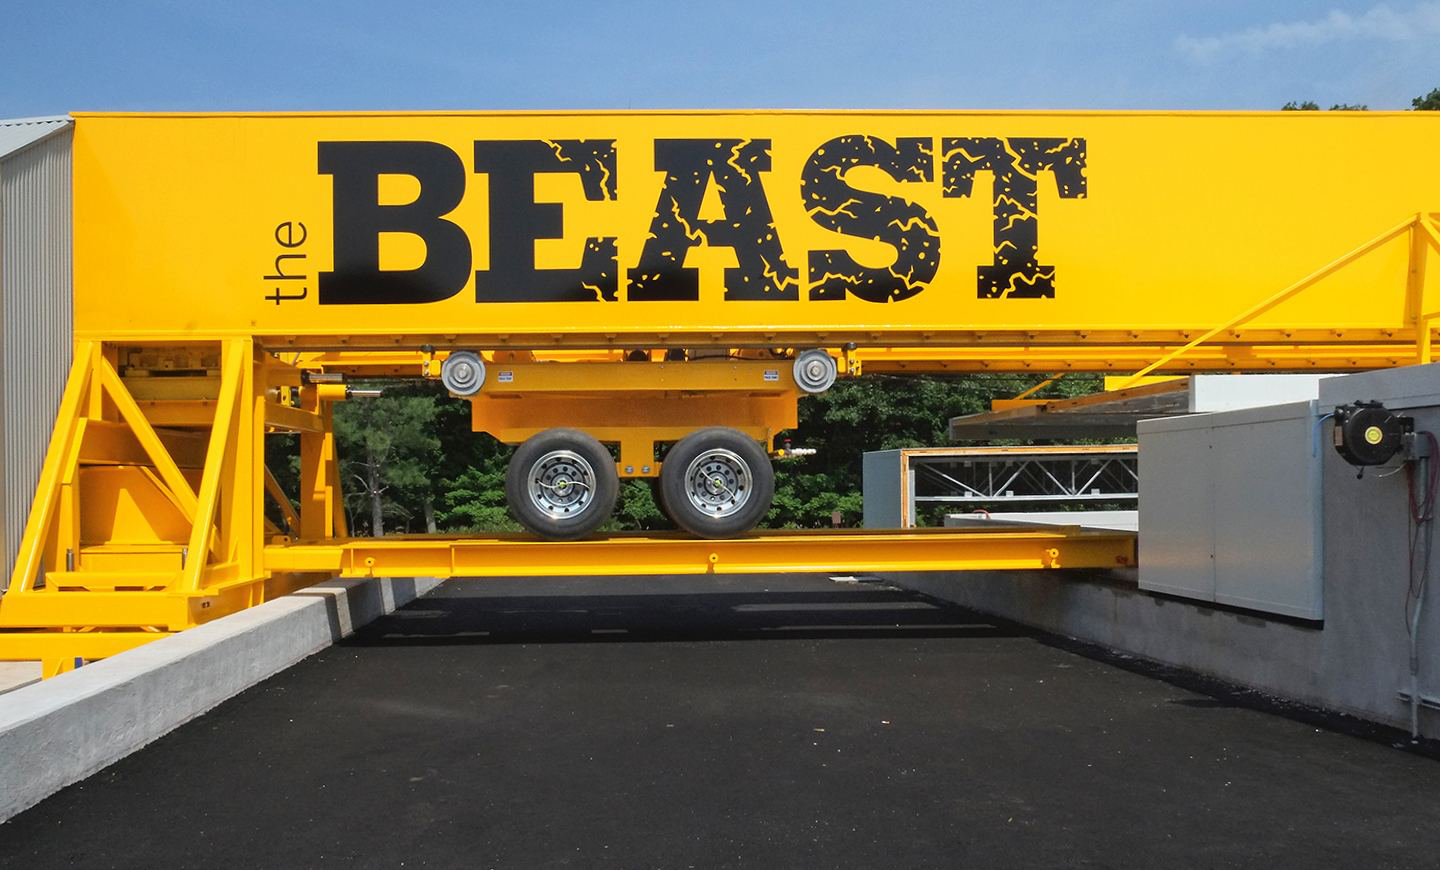 BEAST assembled, before sample placement (June 11, 2015)